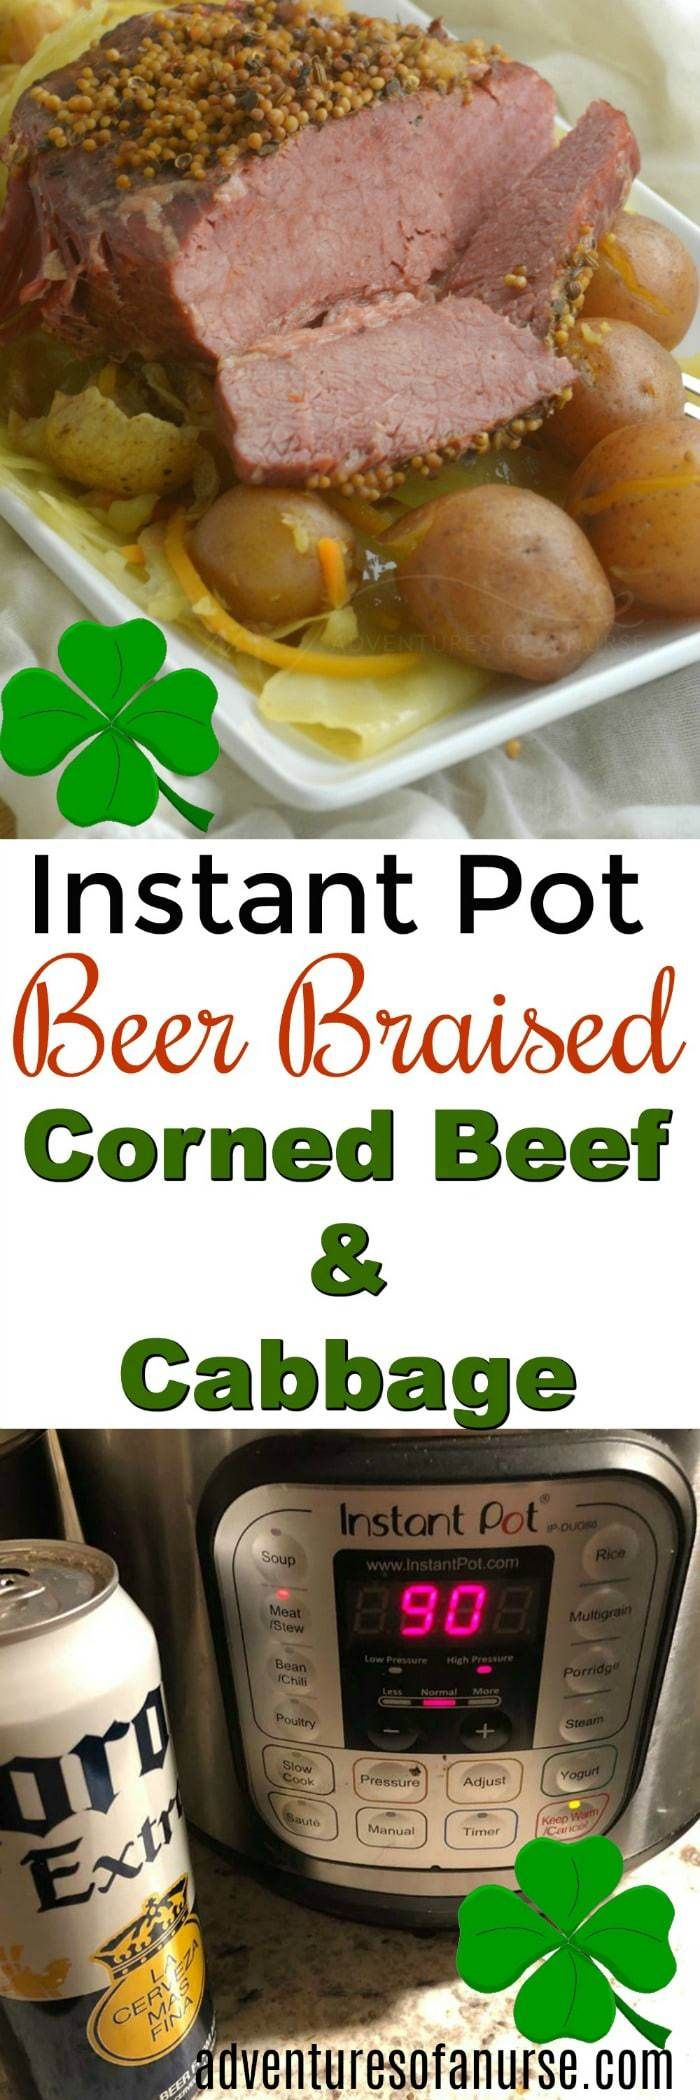 Instant Pot Beer Braised Corned Beef and Cabbage with Potatoes #InstantPot #CornedBeef #St.PatricksDay